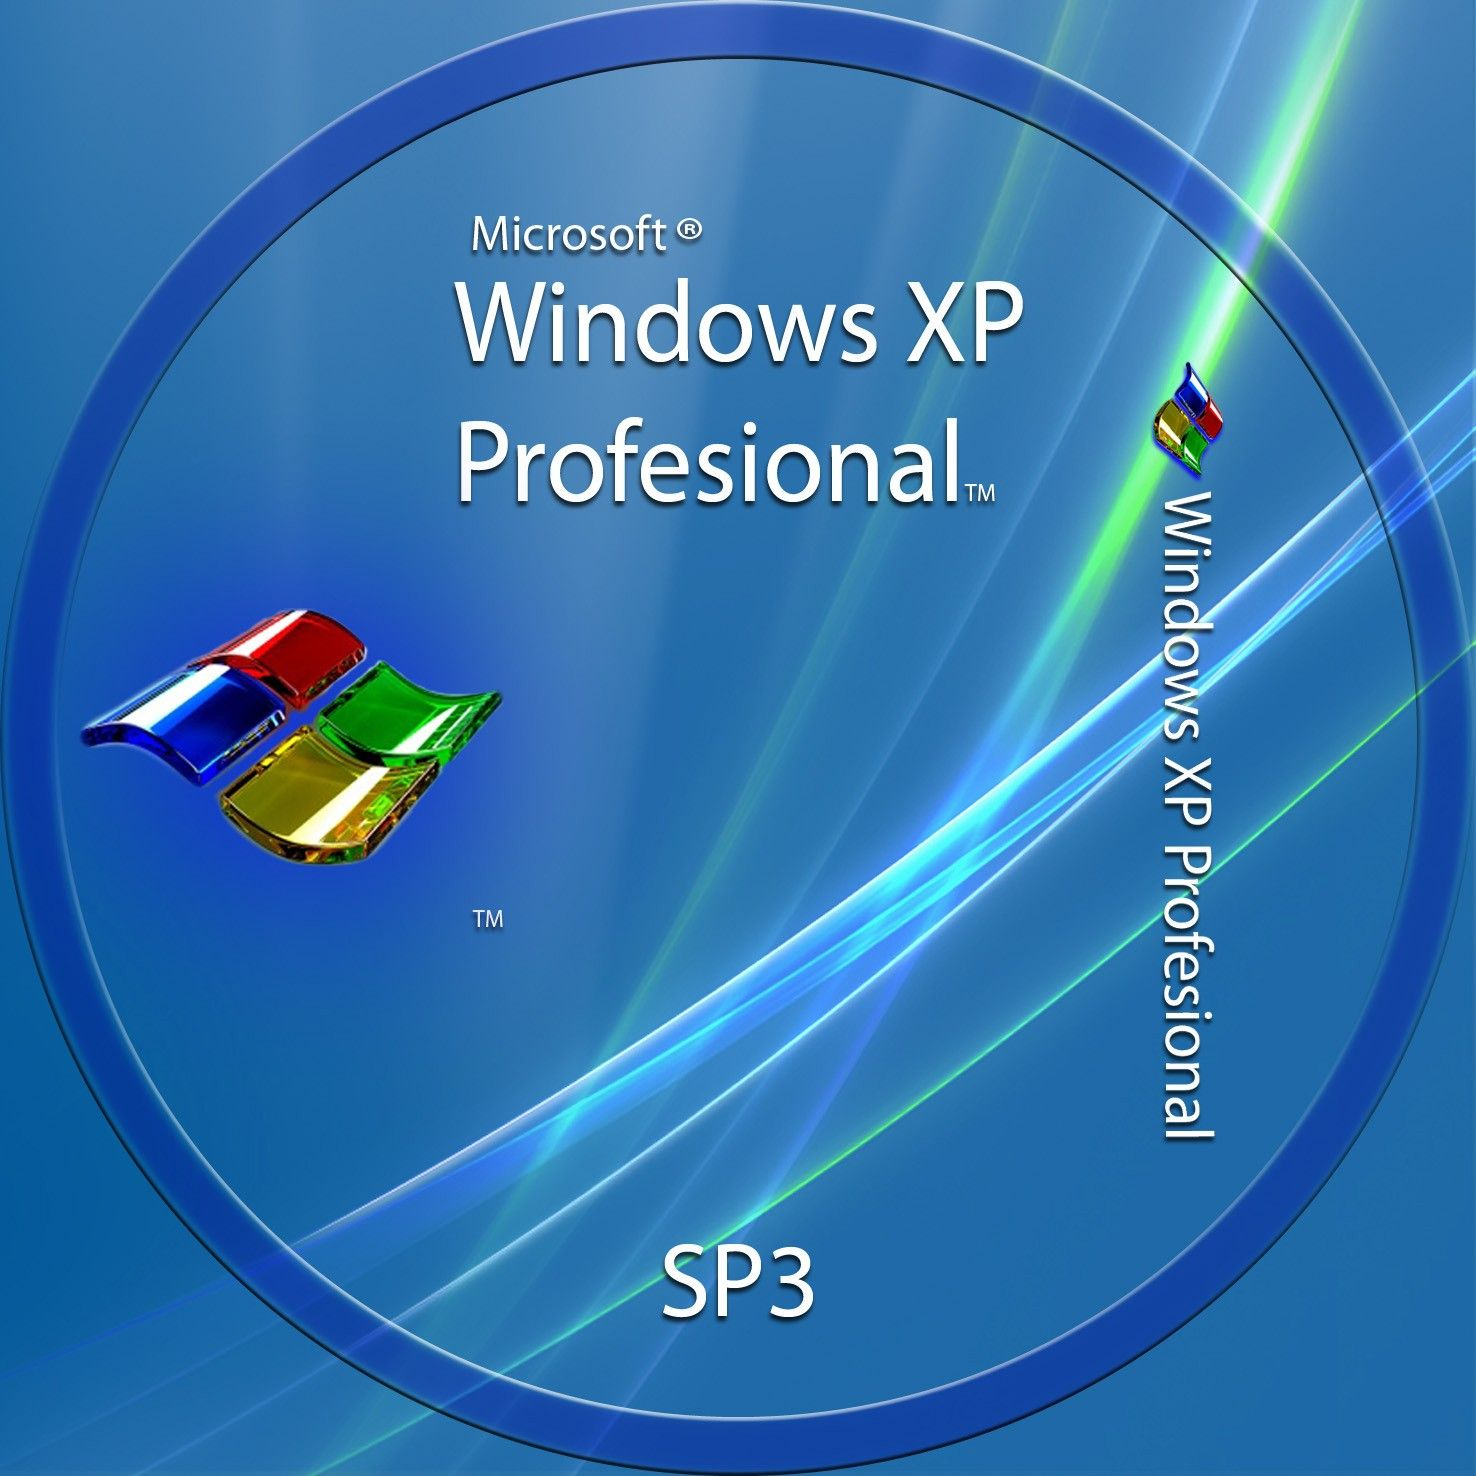 Windows Xp Sp3 Wallpapers